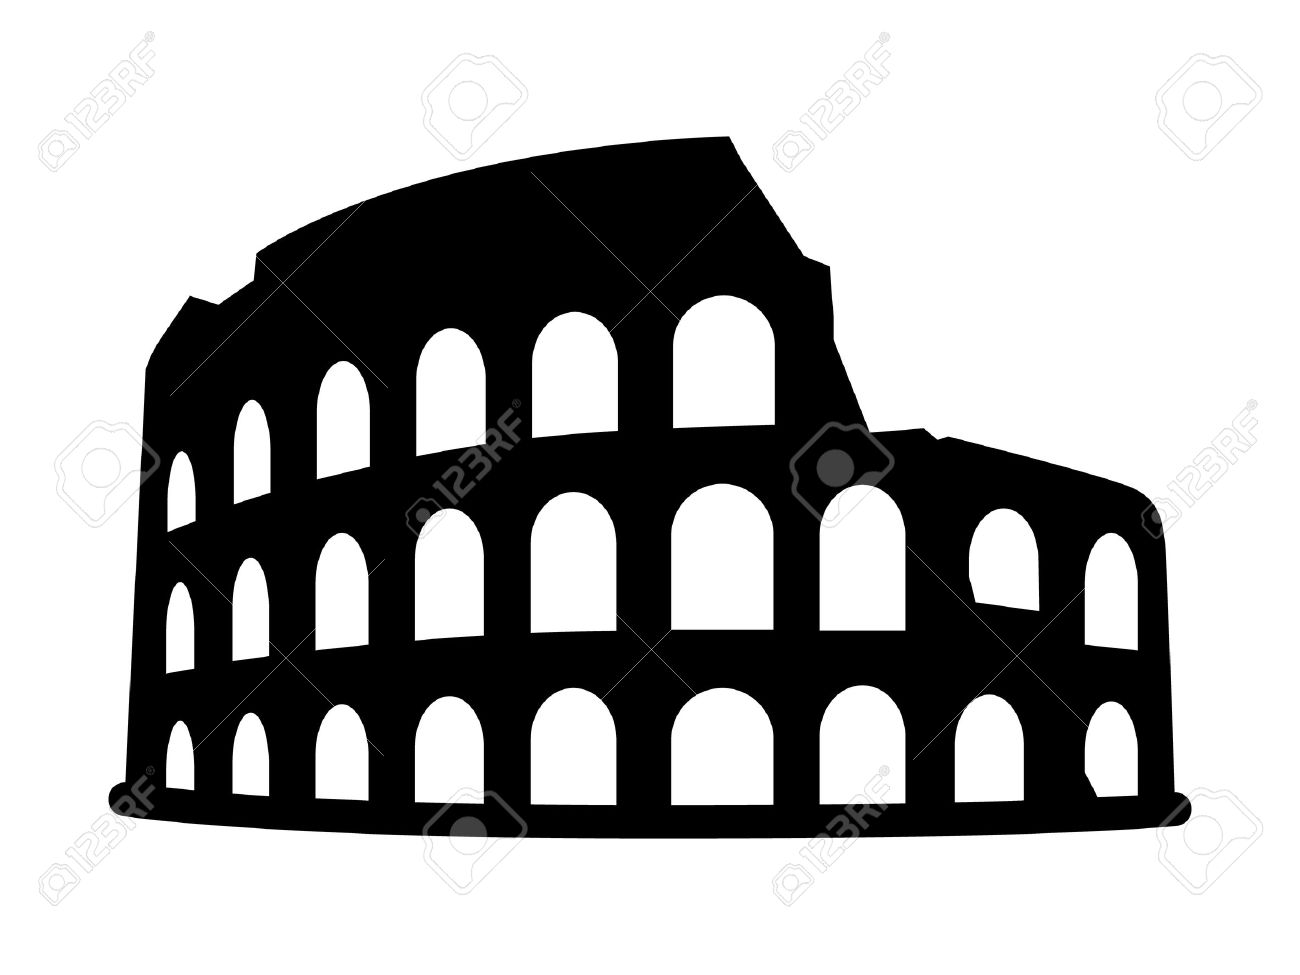 Colosseum coliseum in rome italy flat icon for travel apps colosseum coliseum in rome italy flat icon for travel apps and websites stock vector biocorpaavc